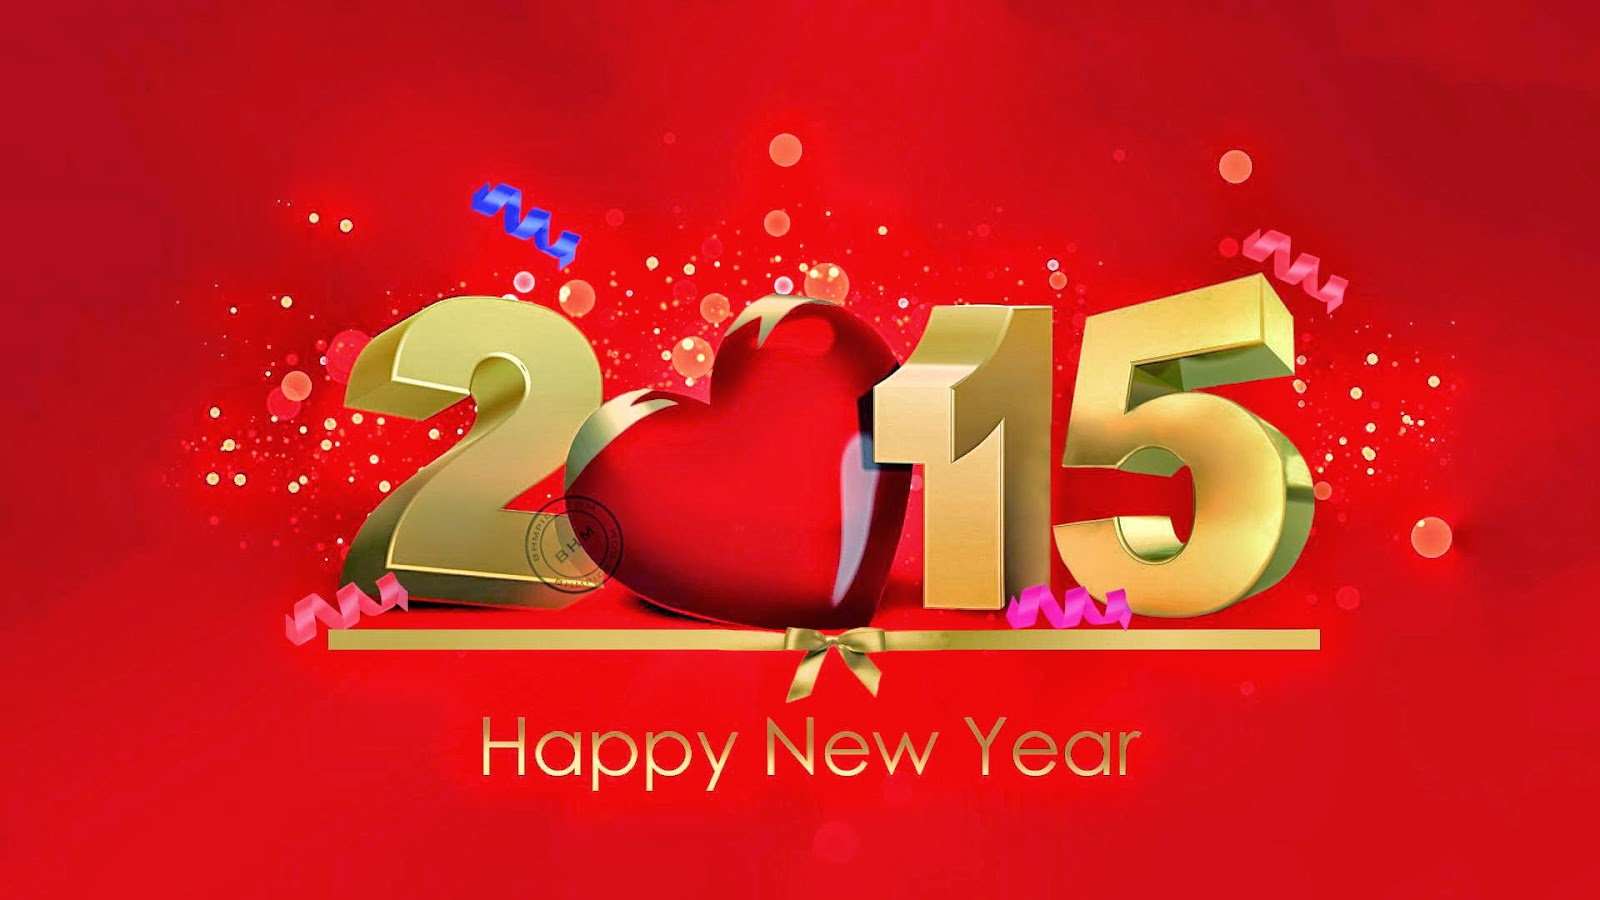 Wallpaper download new year 2015 - Golden Red Happy New Year 2015 Wallpapers Free